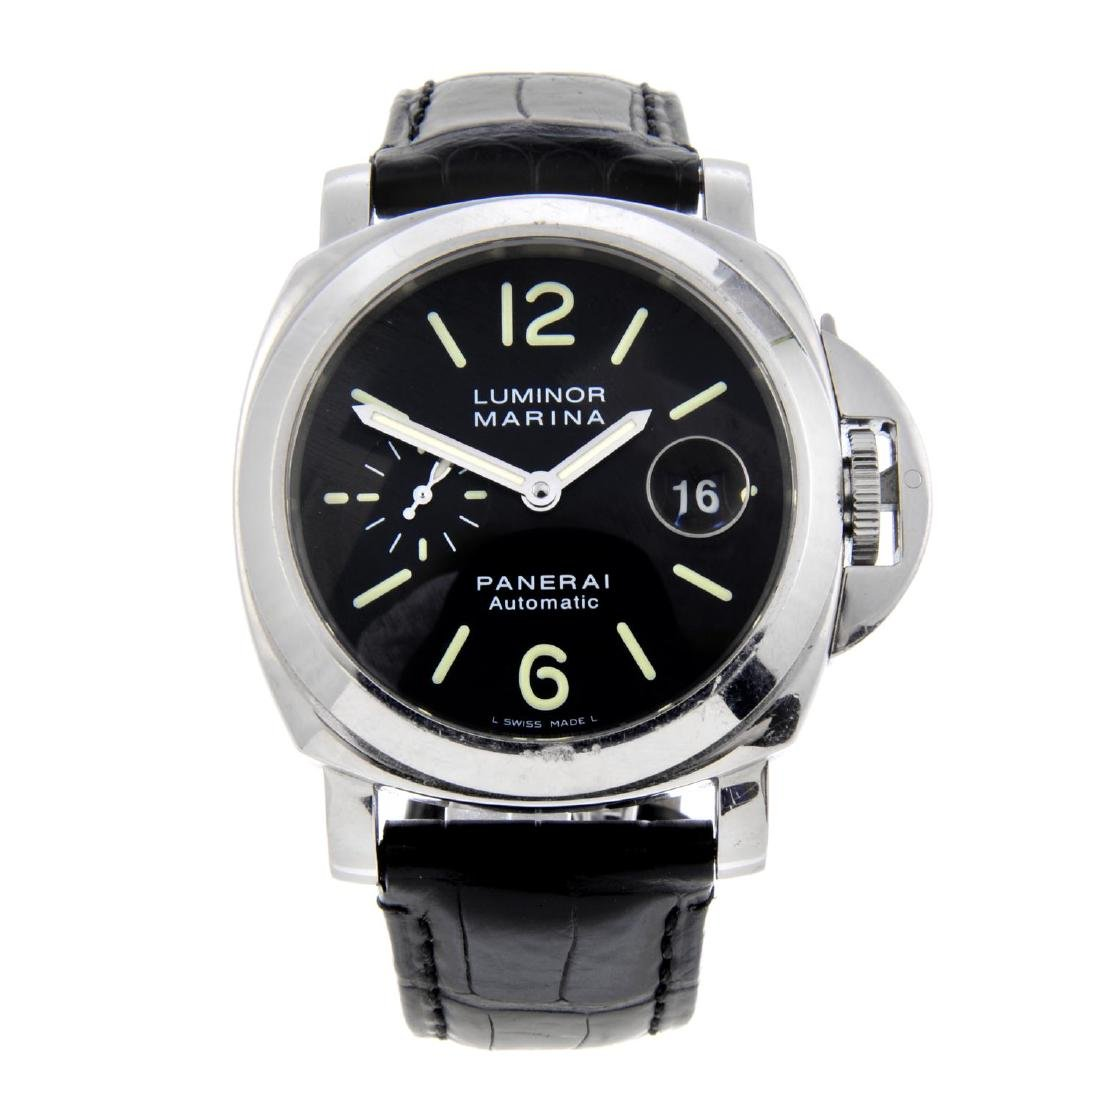 PANERAI - a gentleman's Luminor Marina wrist watch.